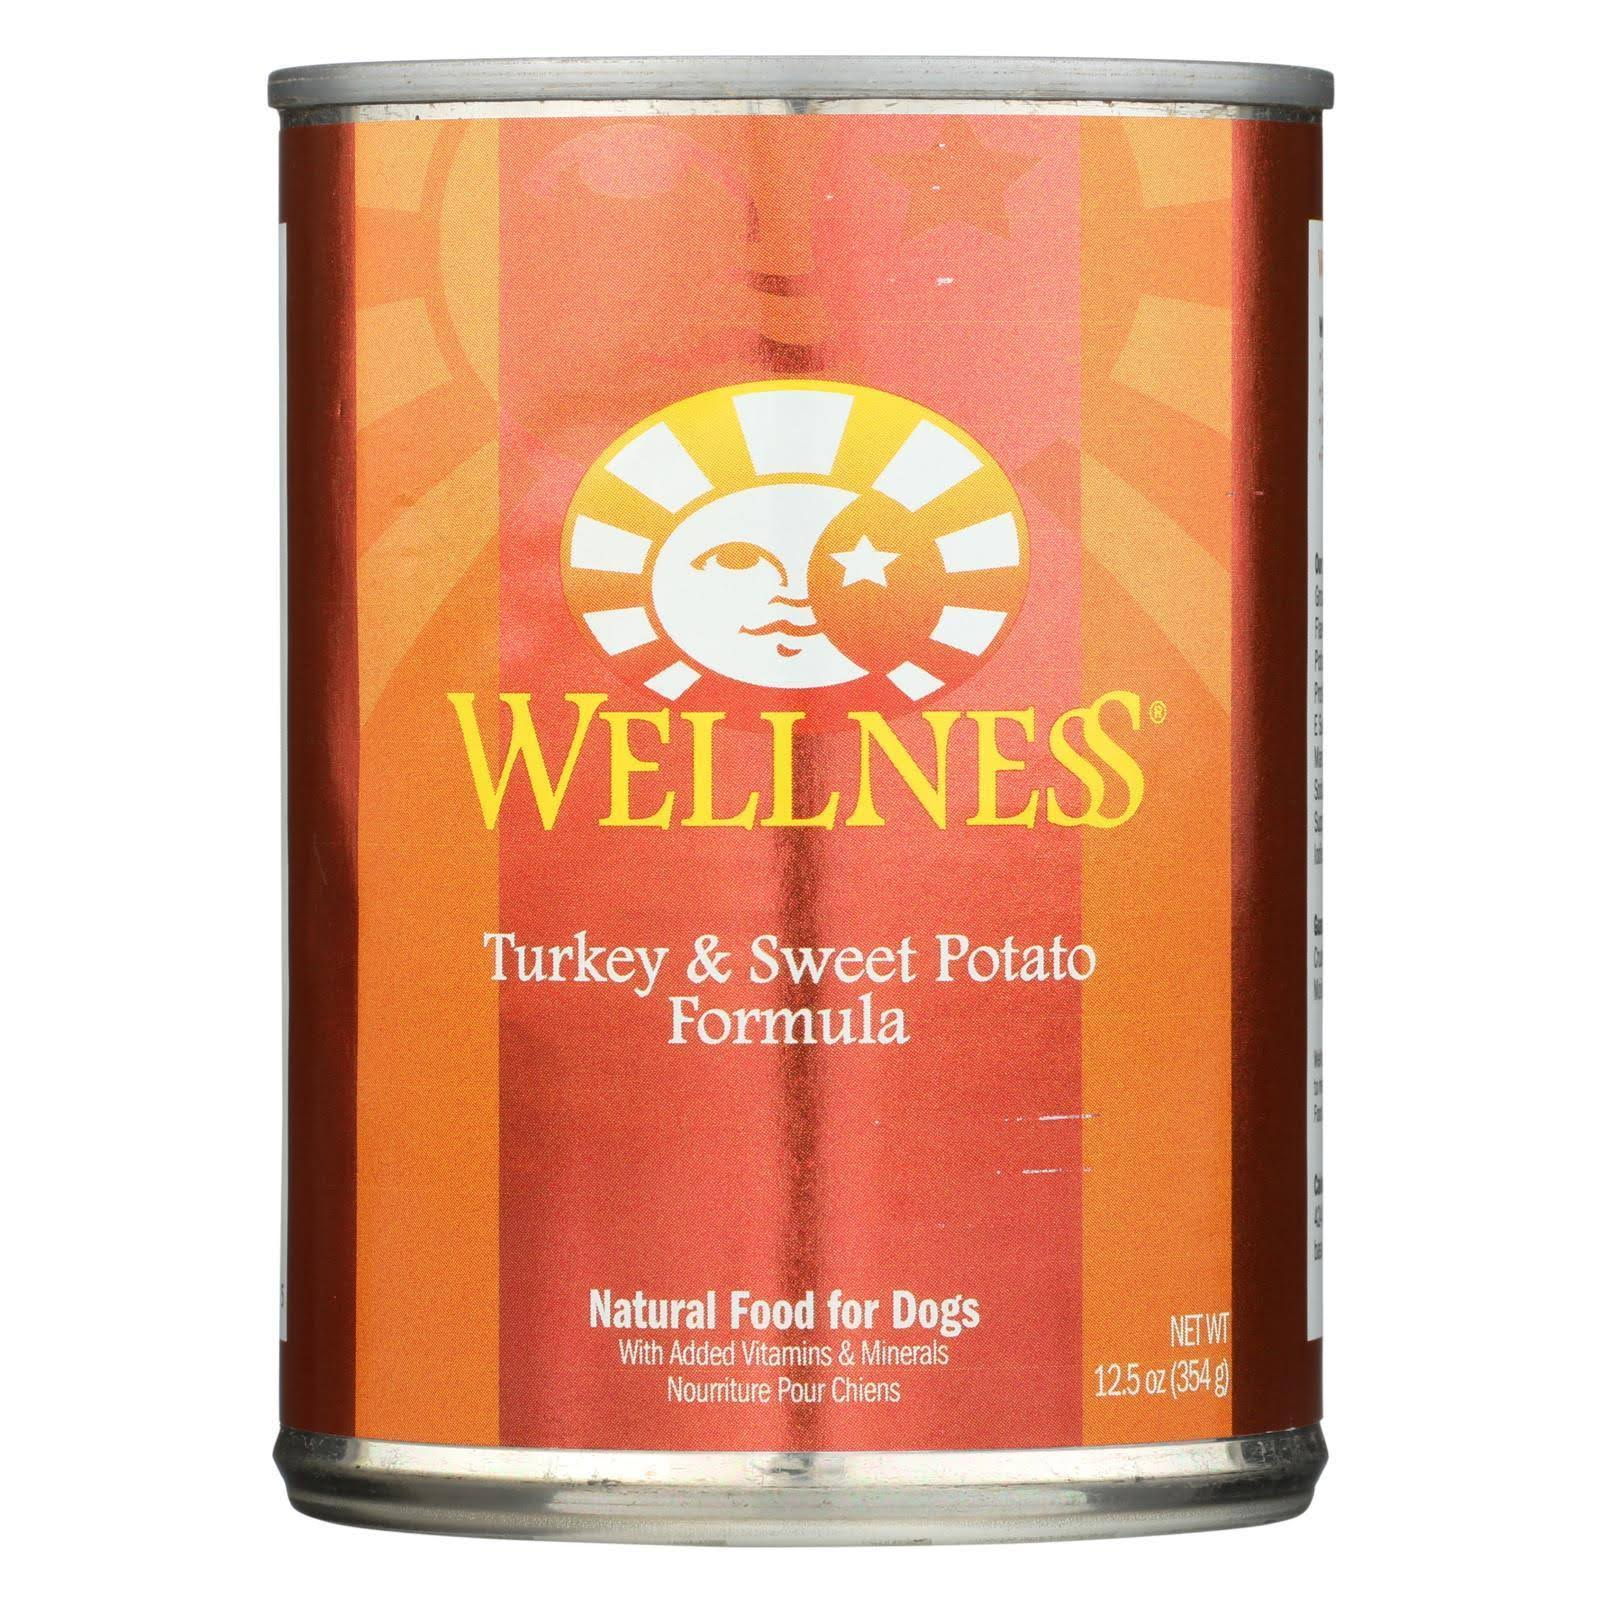 Wellness Dog Food - Turkey and Sweet Potato, 12.5oz